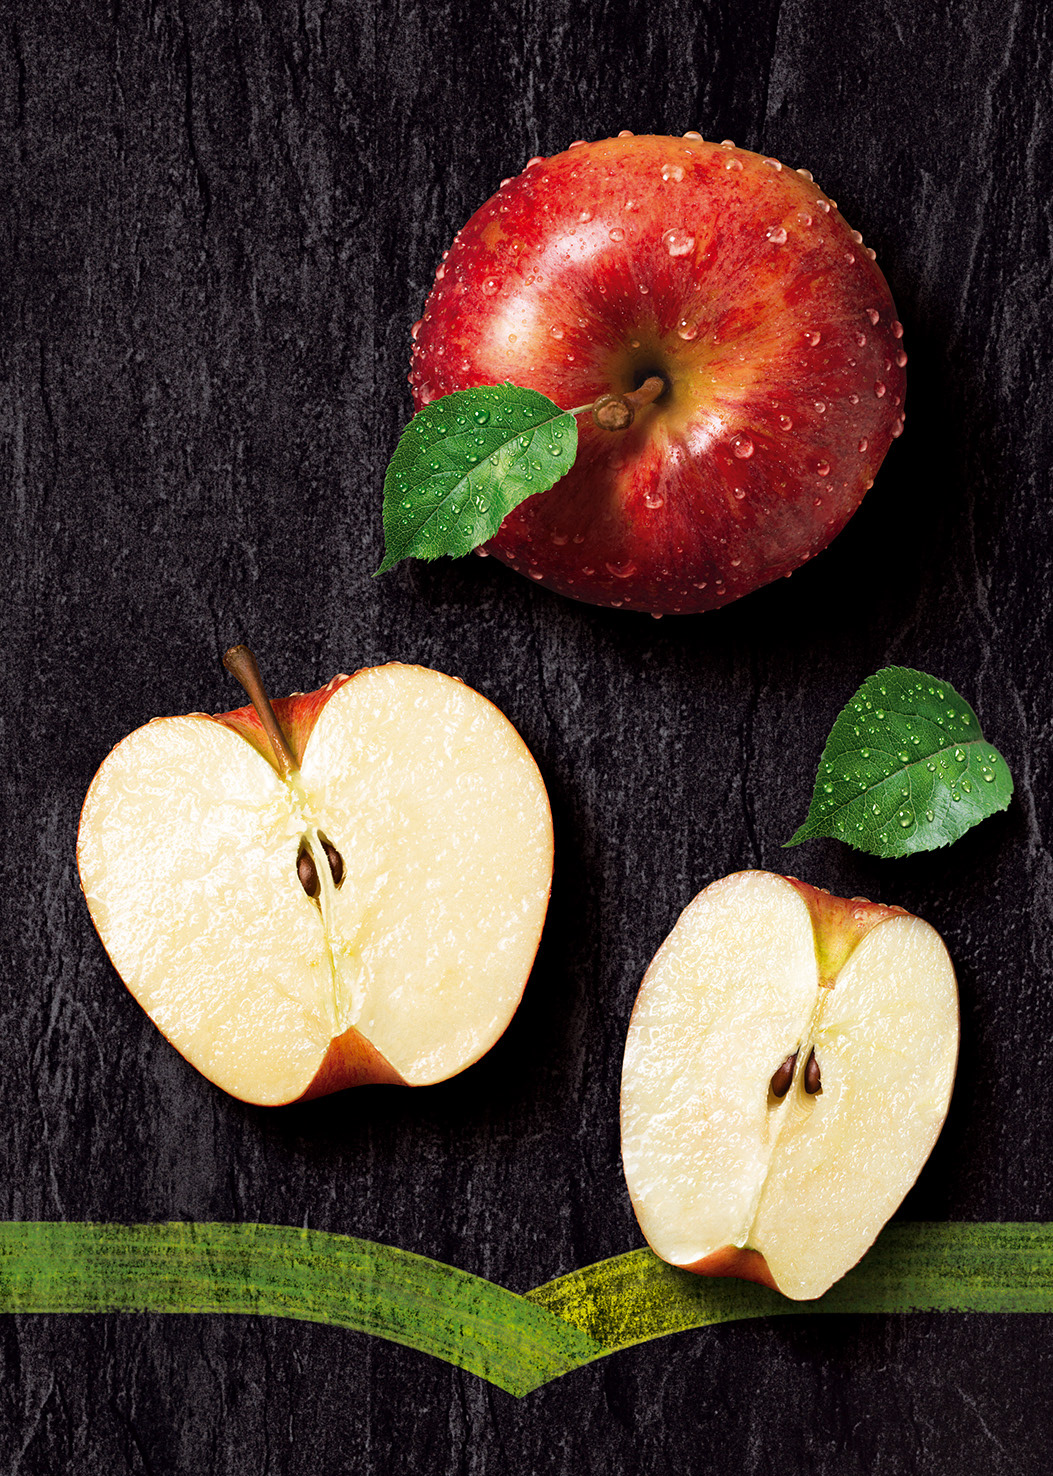 Photo-realistic image of fresh juicy apples on a slate background for Minute Maid packaging.